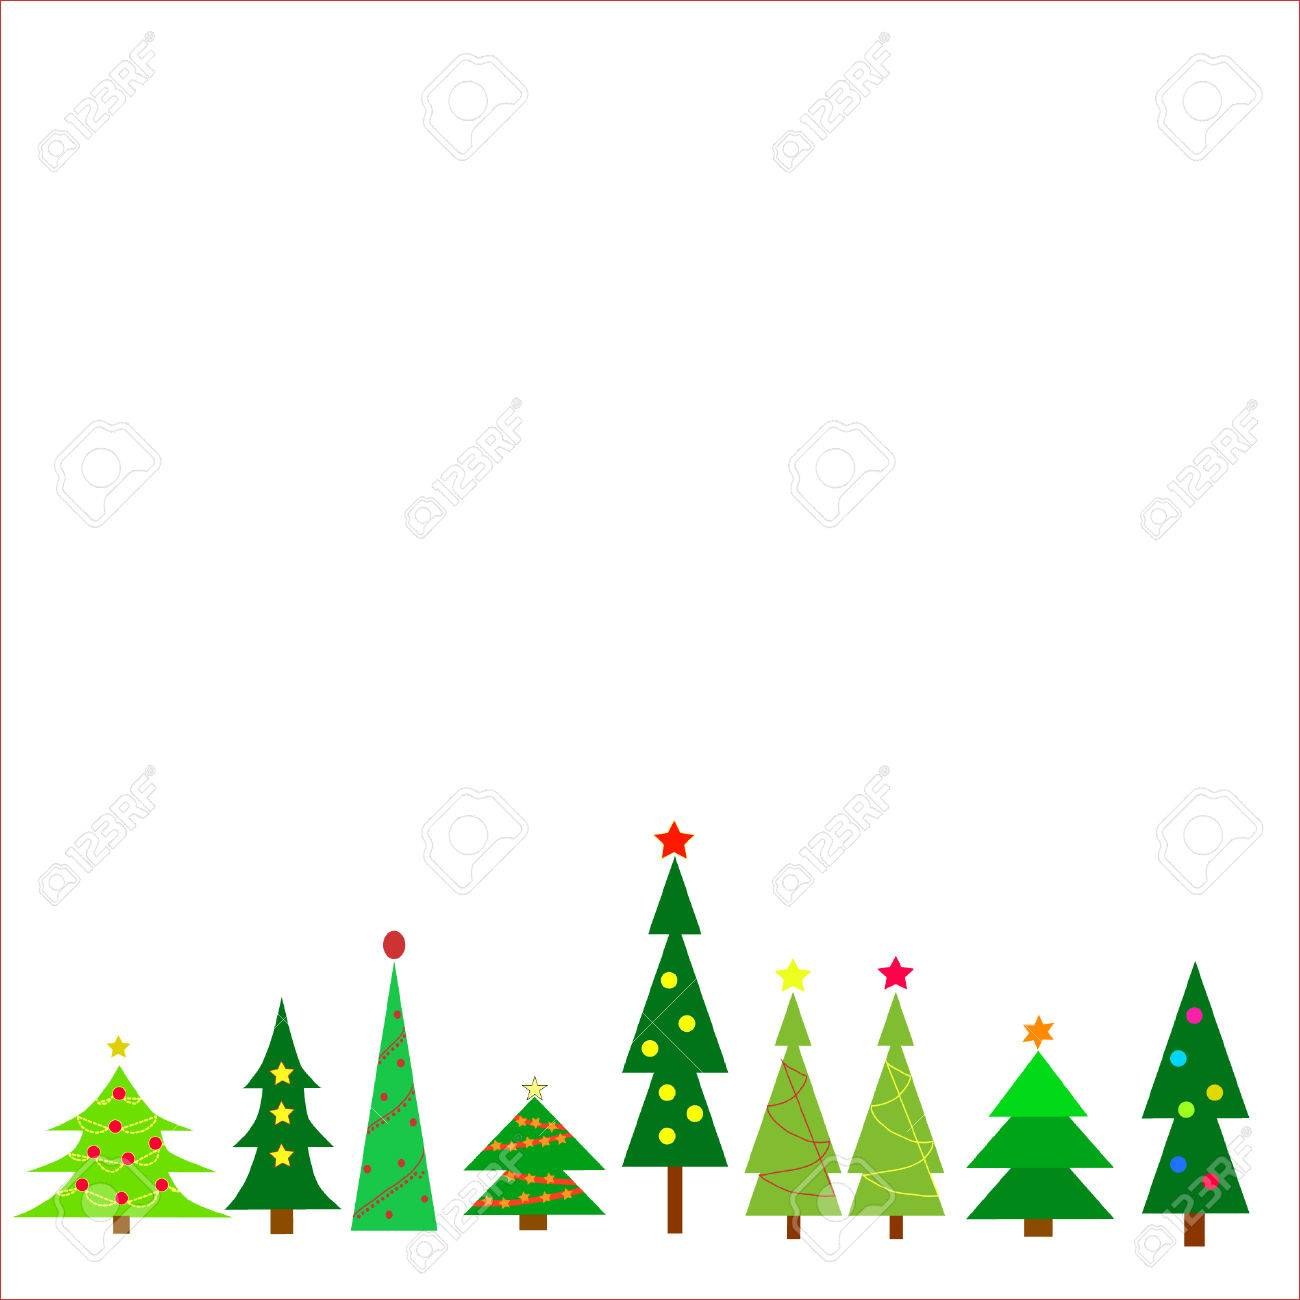 Row of different christmas trees on a white background..